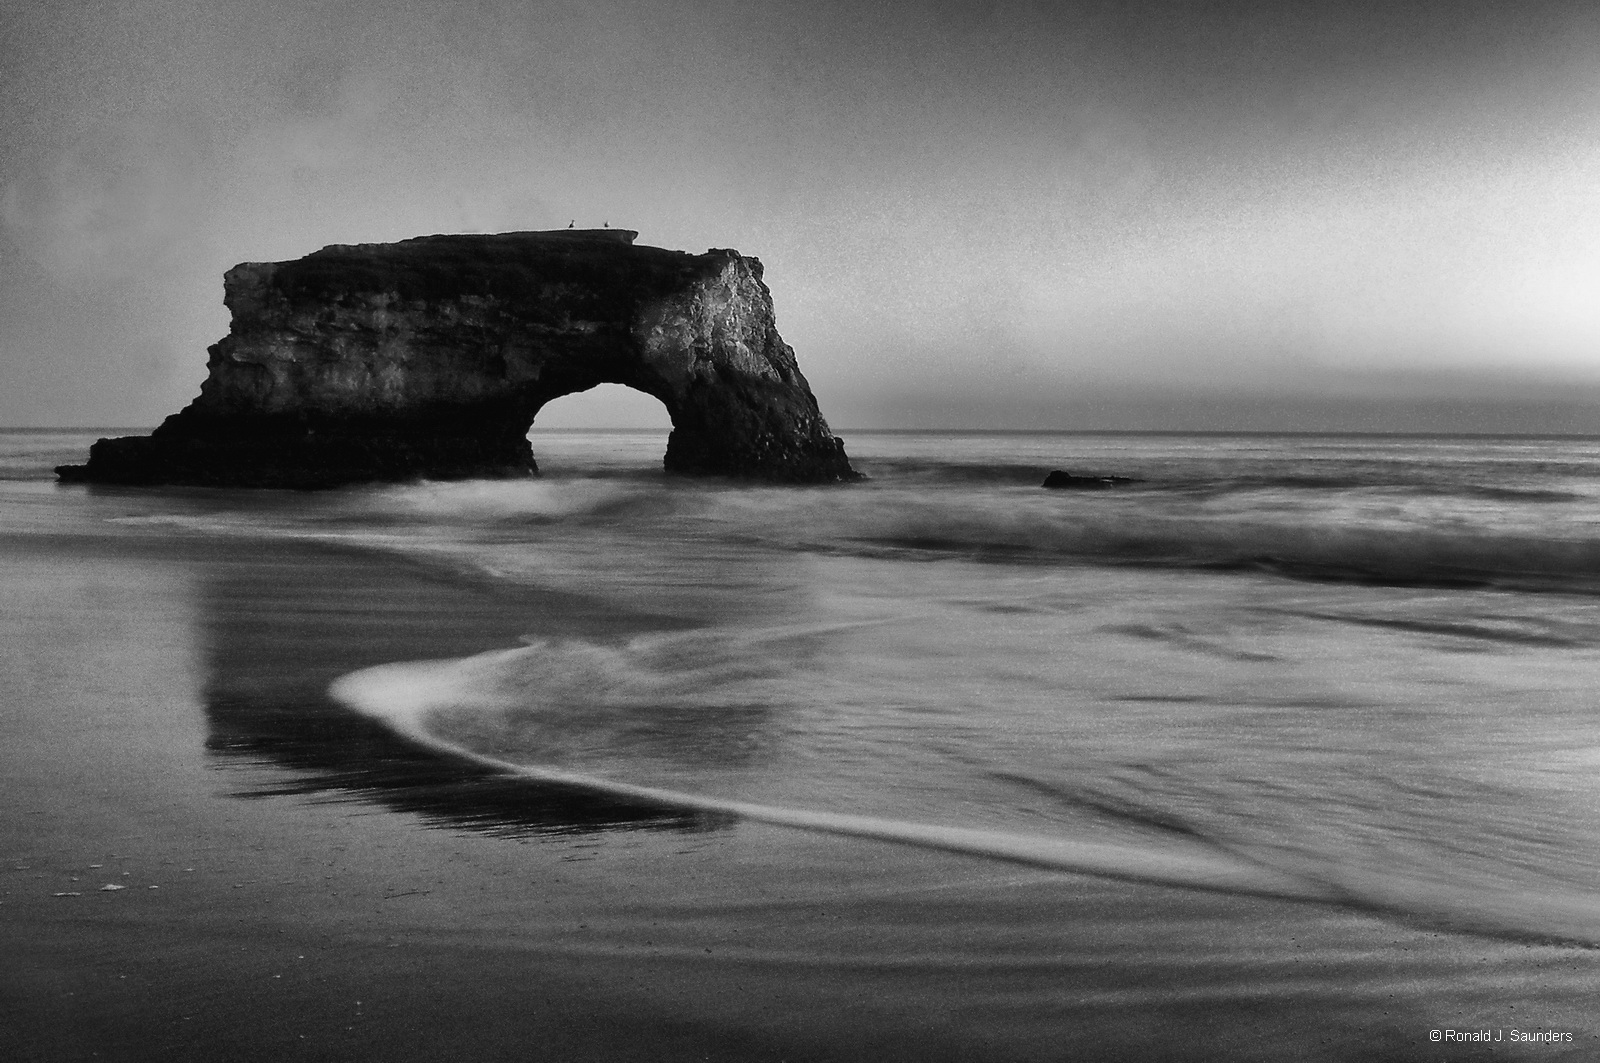 beach, B&W, arch, california, santa cruz, landscape, surf, water, sunsey, photo